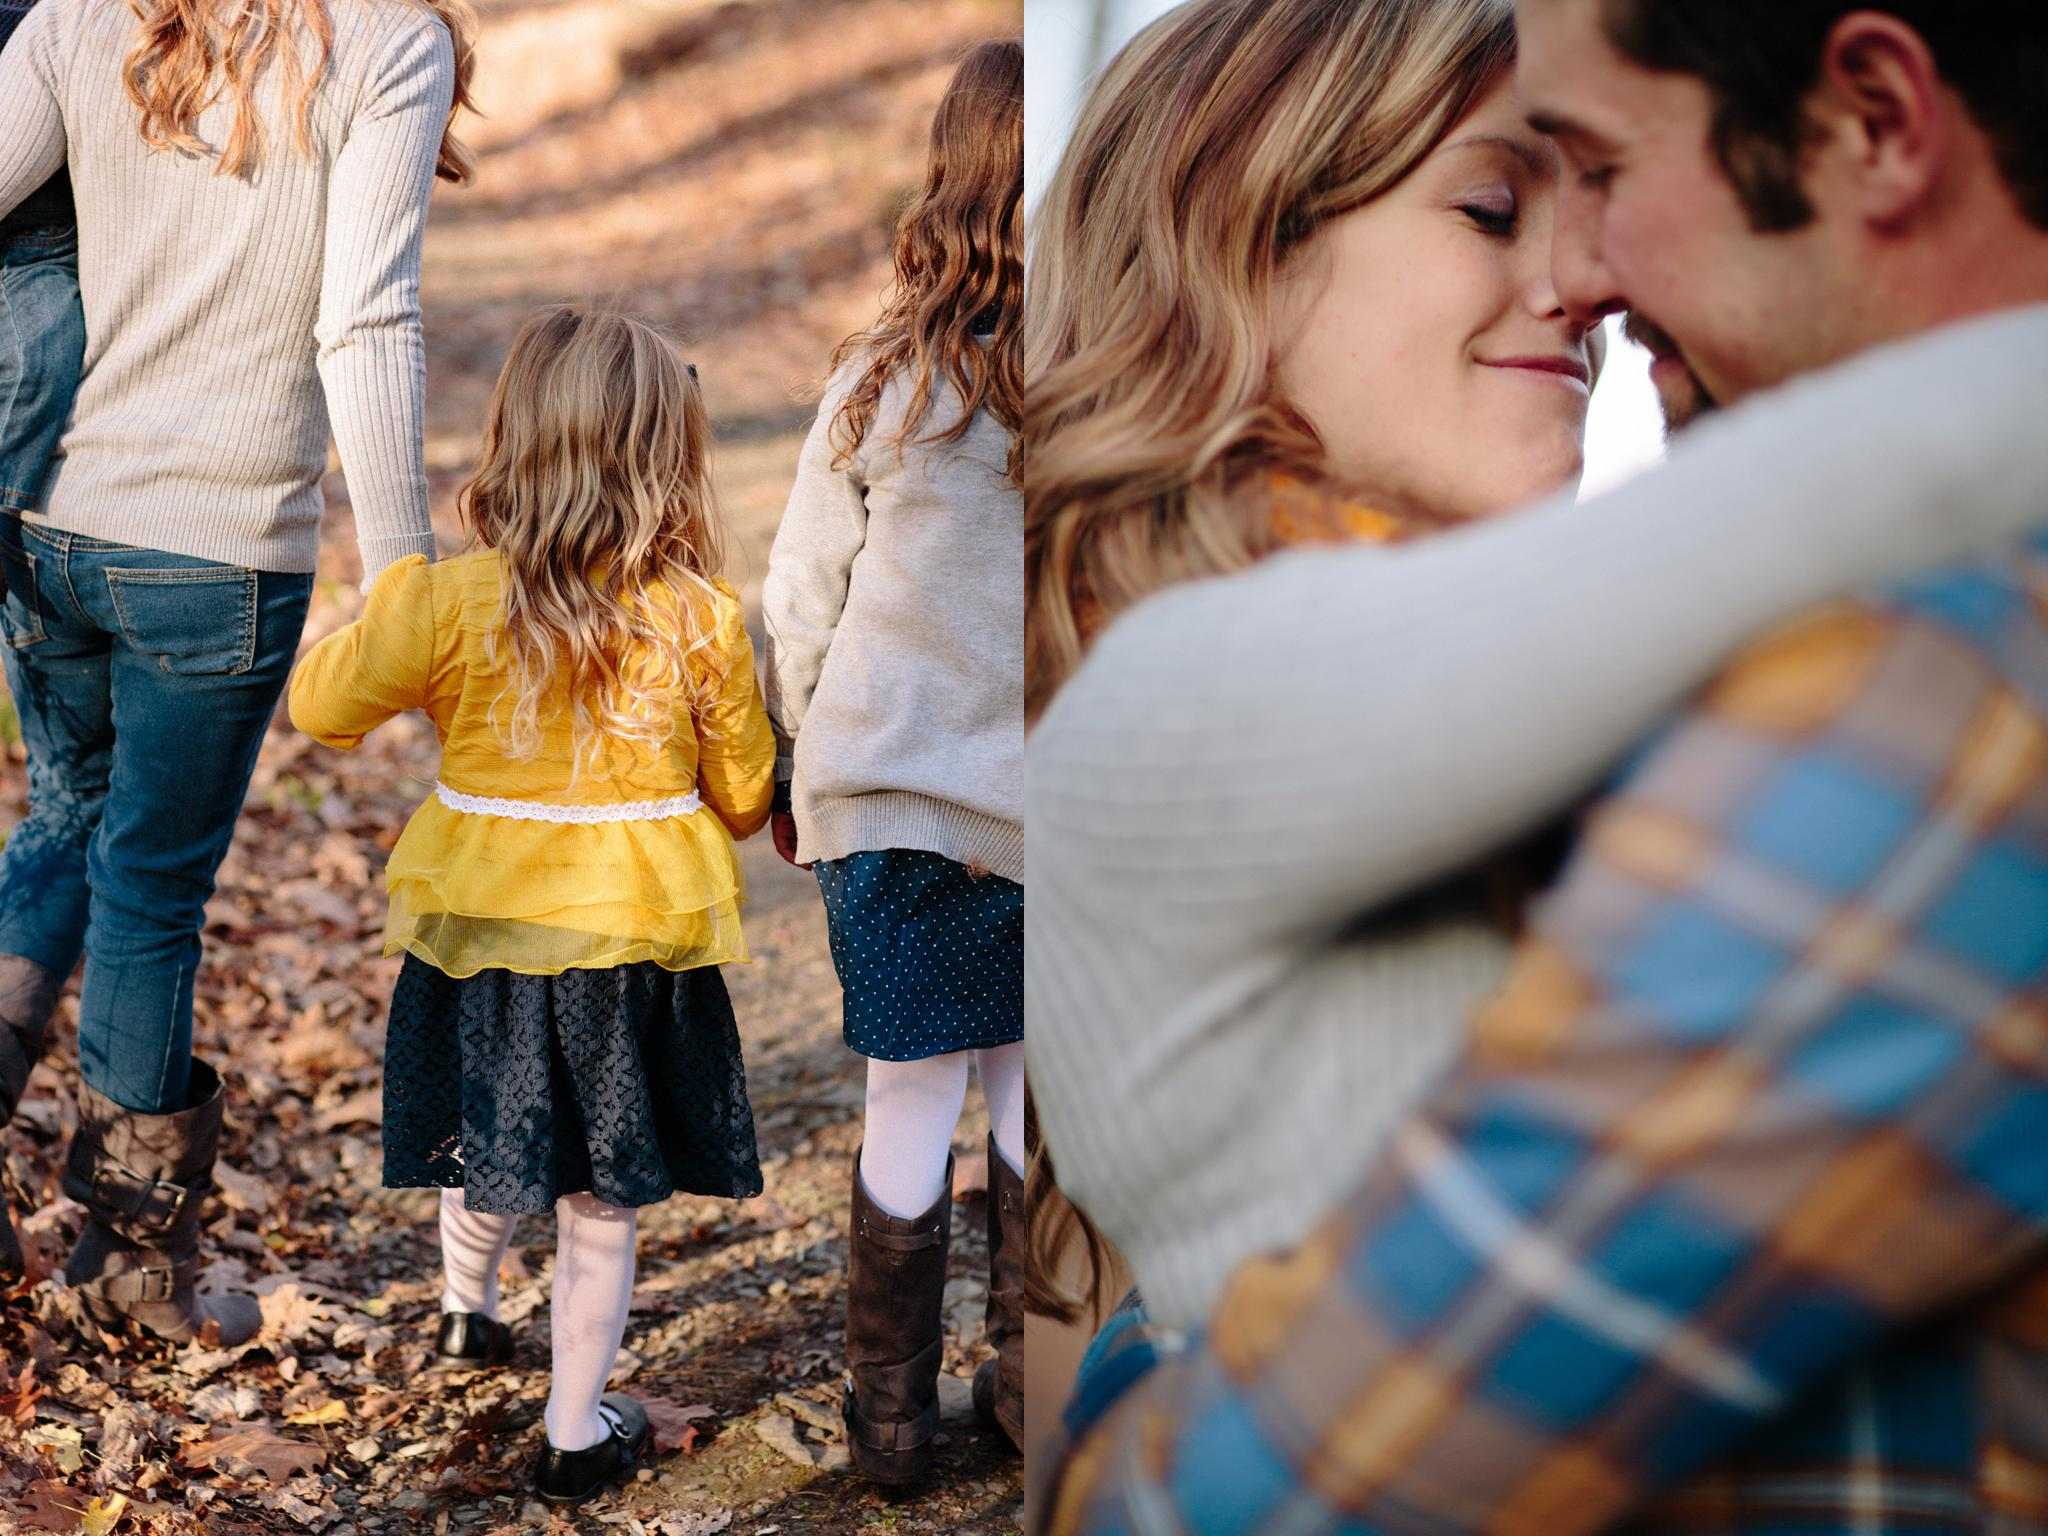 south_abington_park_family_photographer_8257.jpg